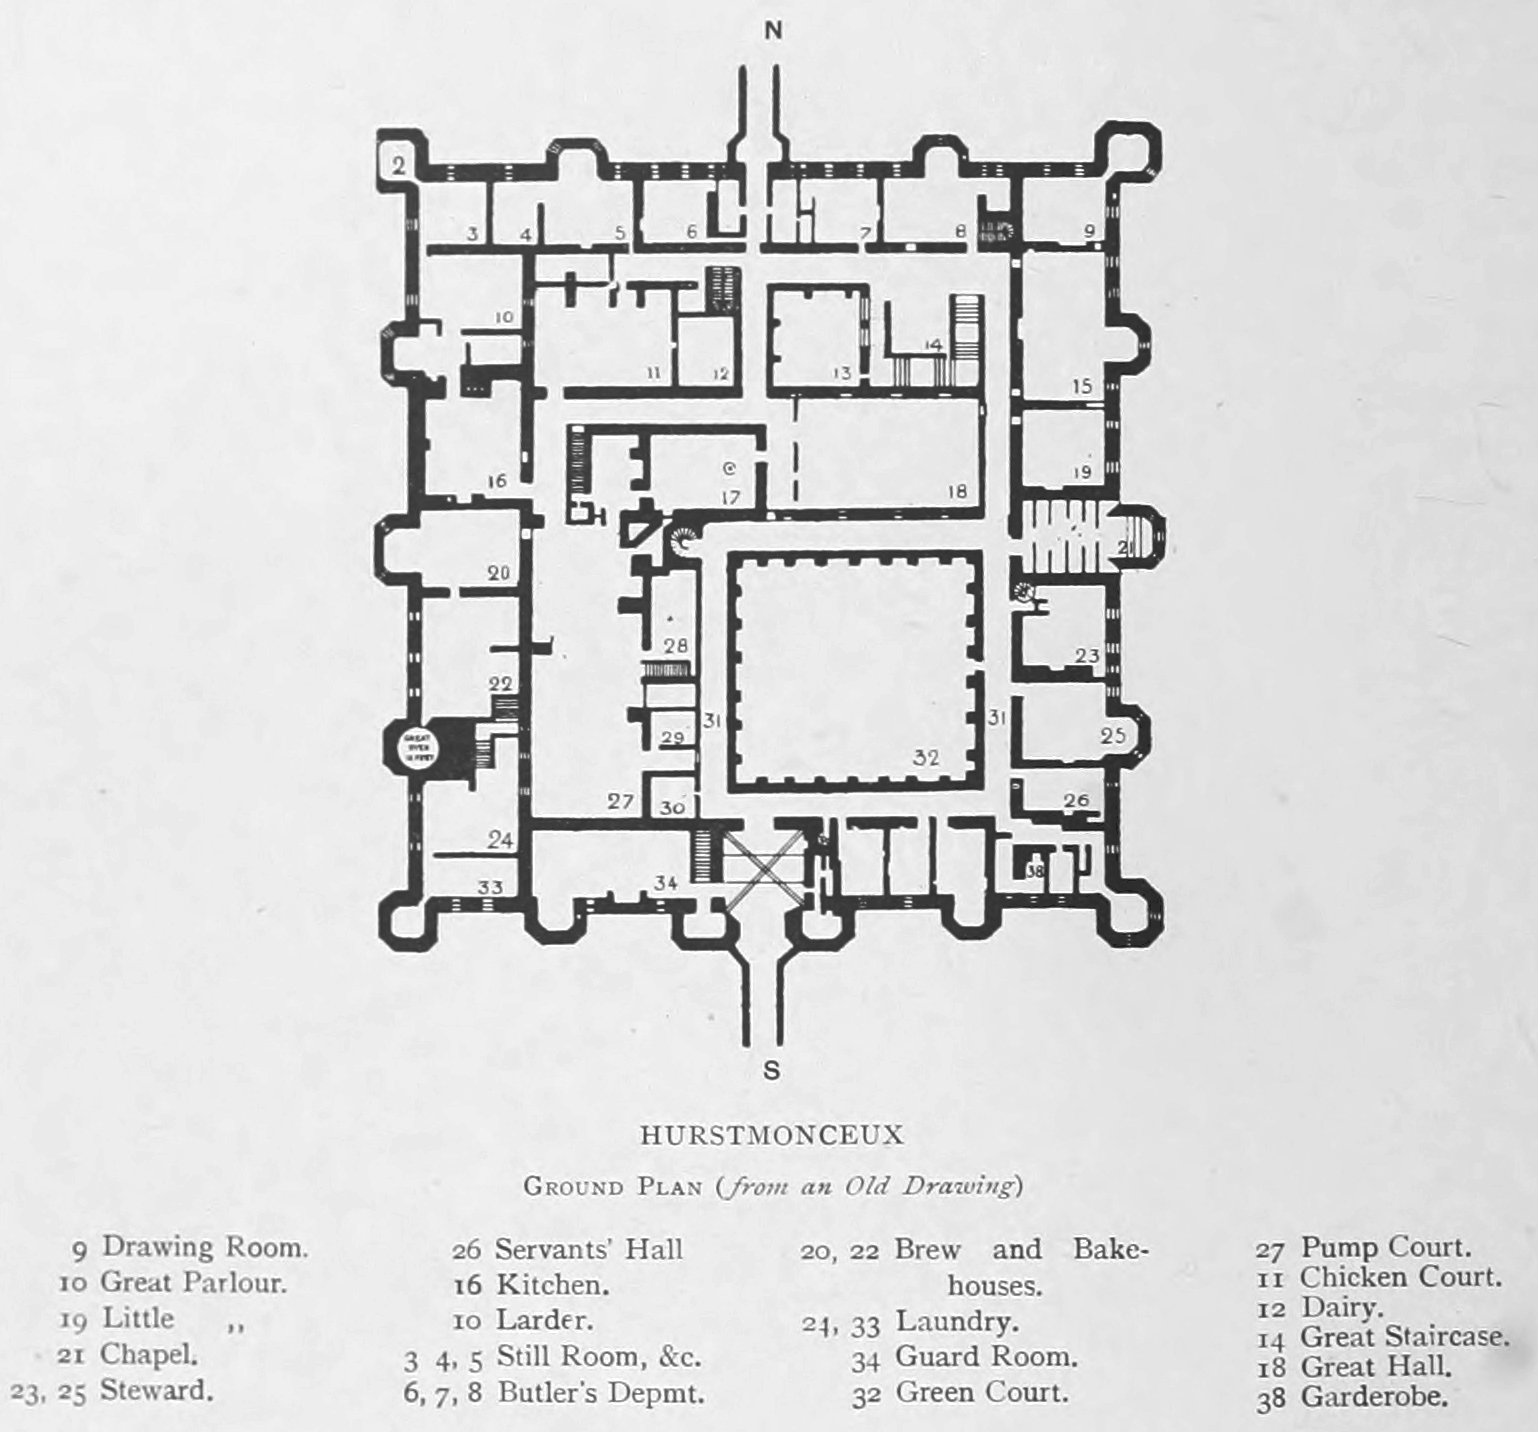 Fantasy Castle Floor Plans http://domiase.net/old-castle-floorplans/